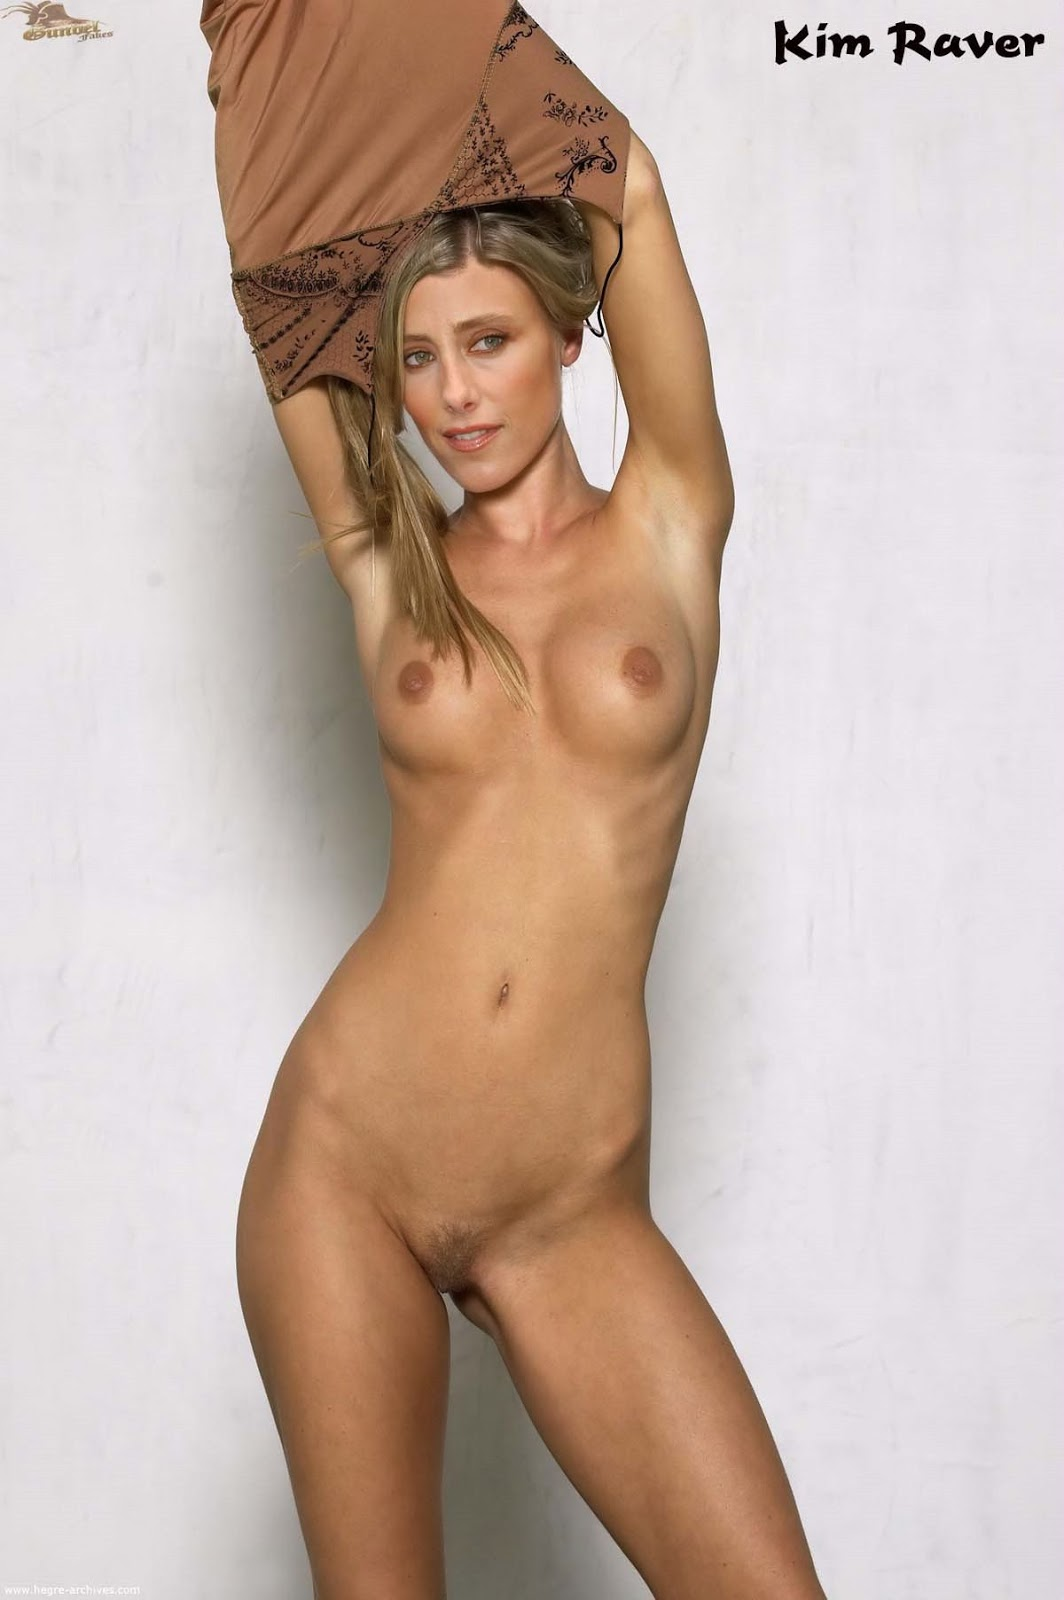 Kim raver naked pics were mistaken